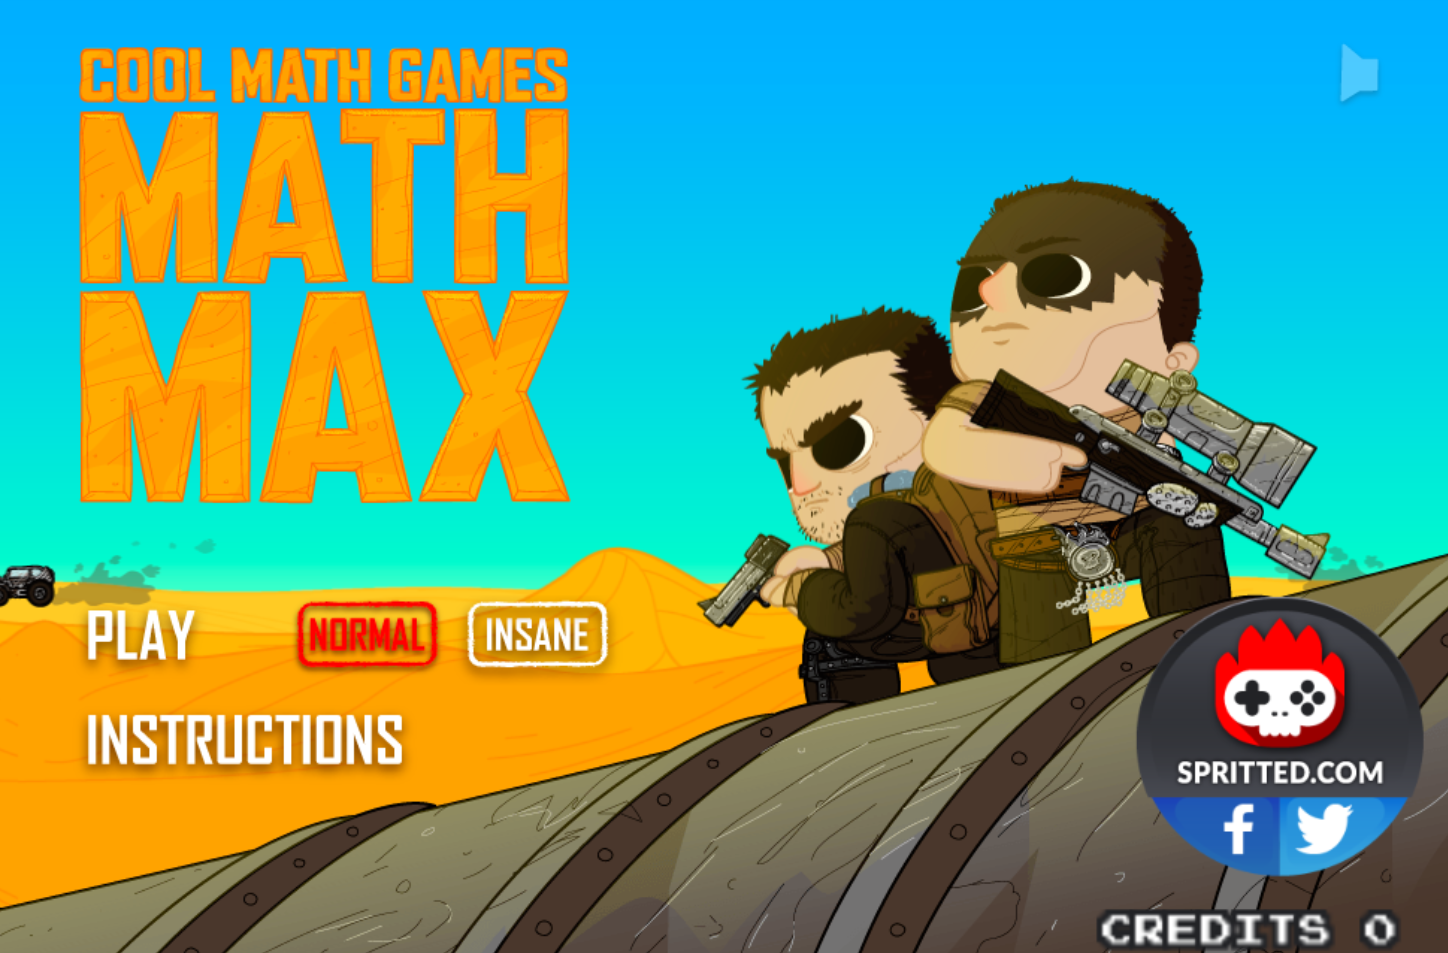 Phaser - News - Cool Math Games: Math Max: Combining maths with the ...